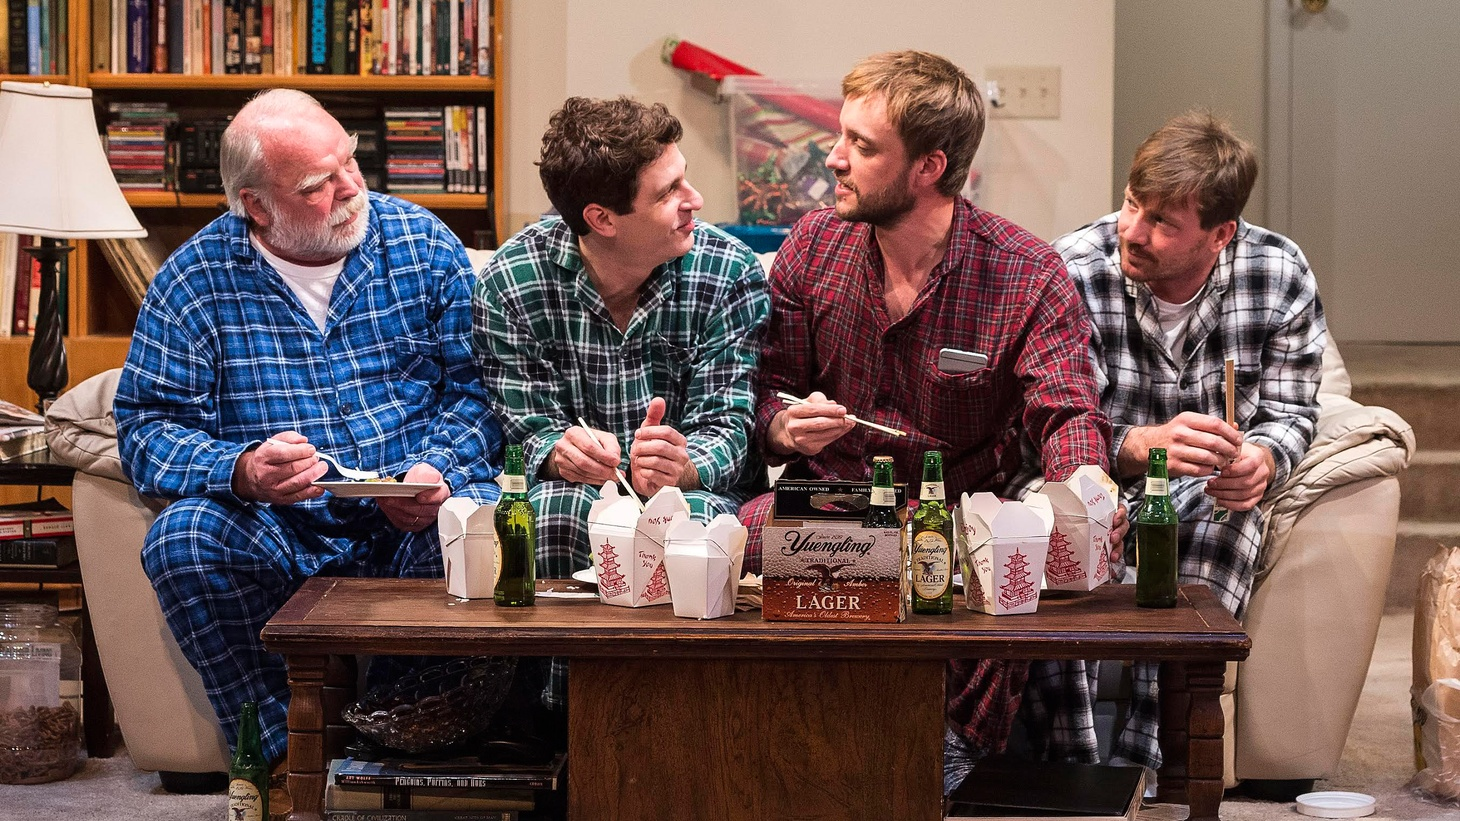 Is the Center Theater Group finally rediscovering its political voice? A new play there has us thinking about gender roles and white privilege.